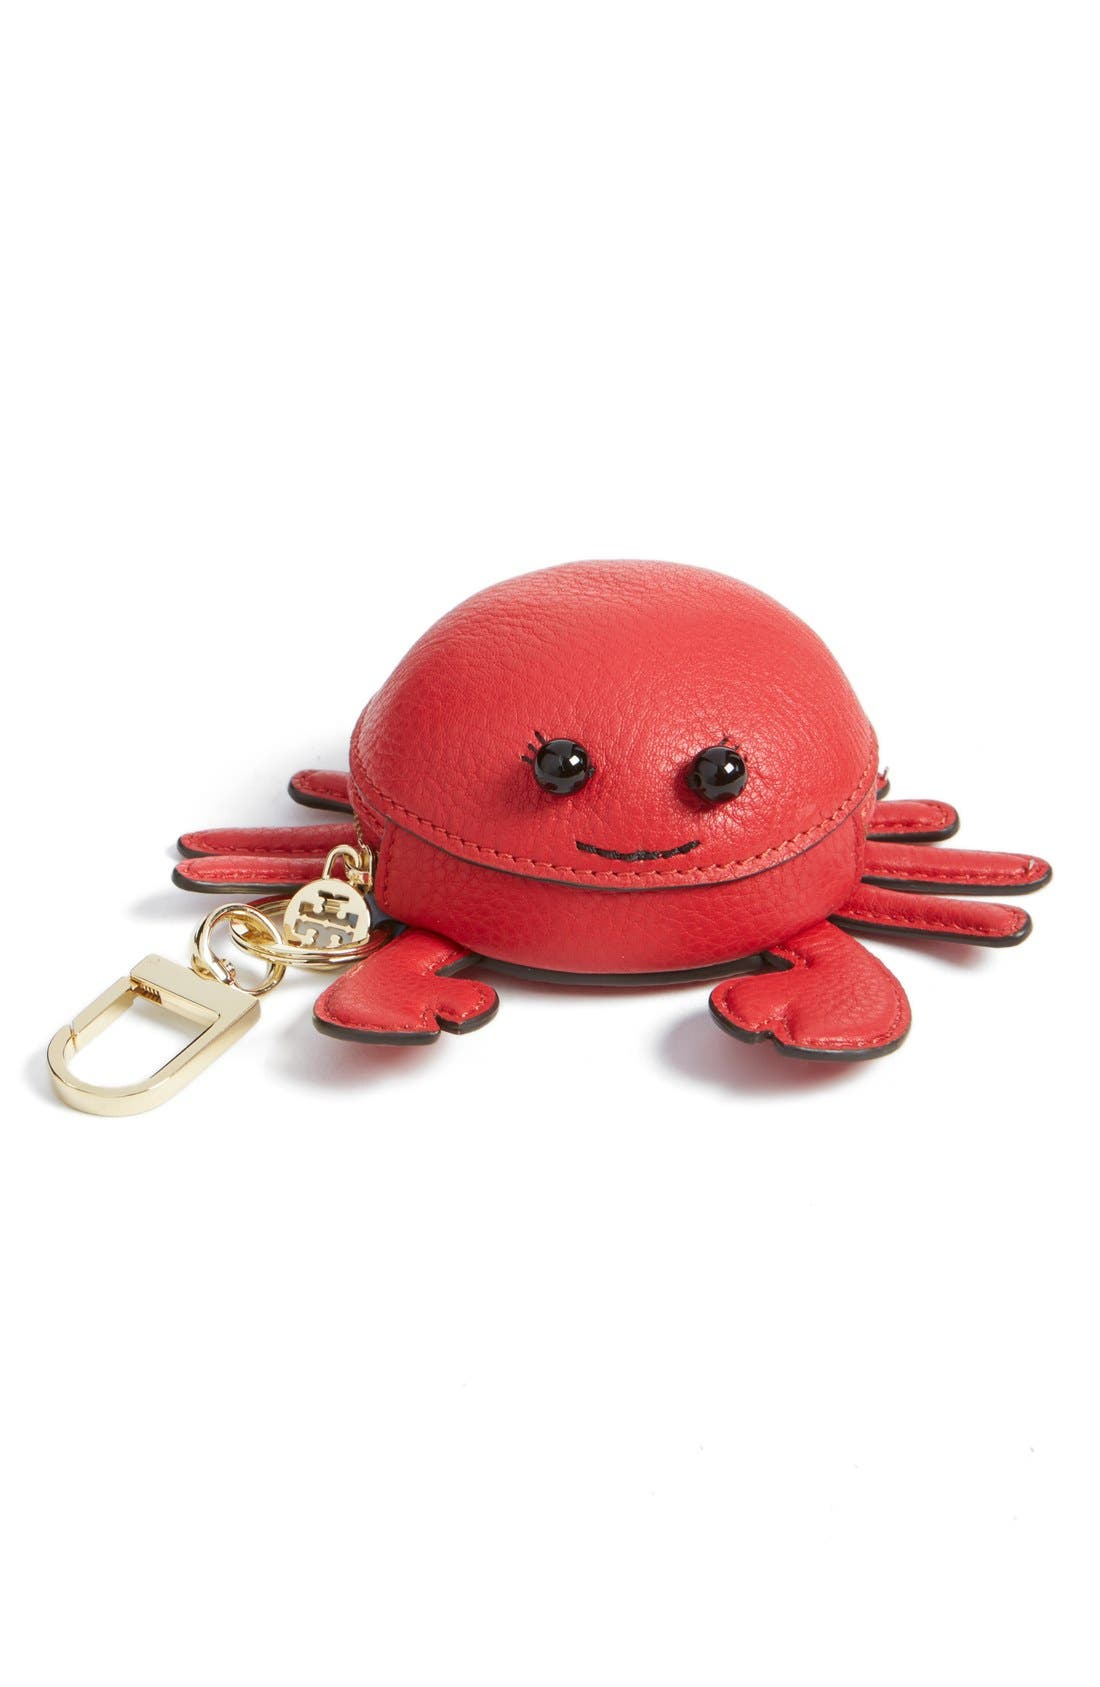 Alternate Image 1 Selected - Tory Burch 'Carl Crab' Coin Pouch Bag Charm